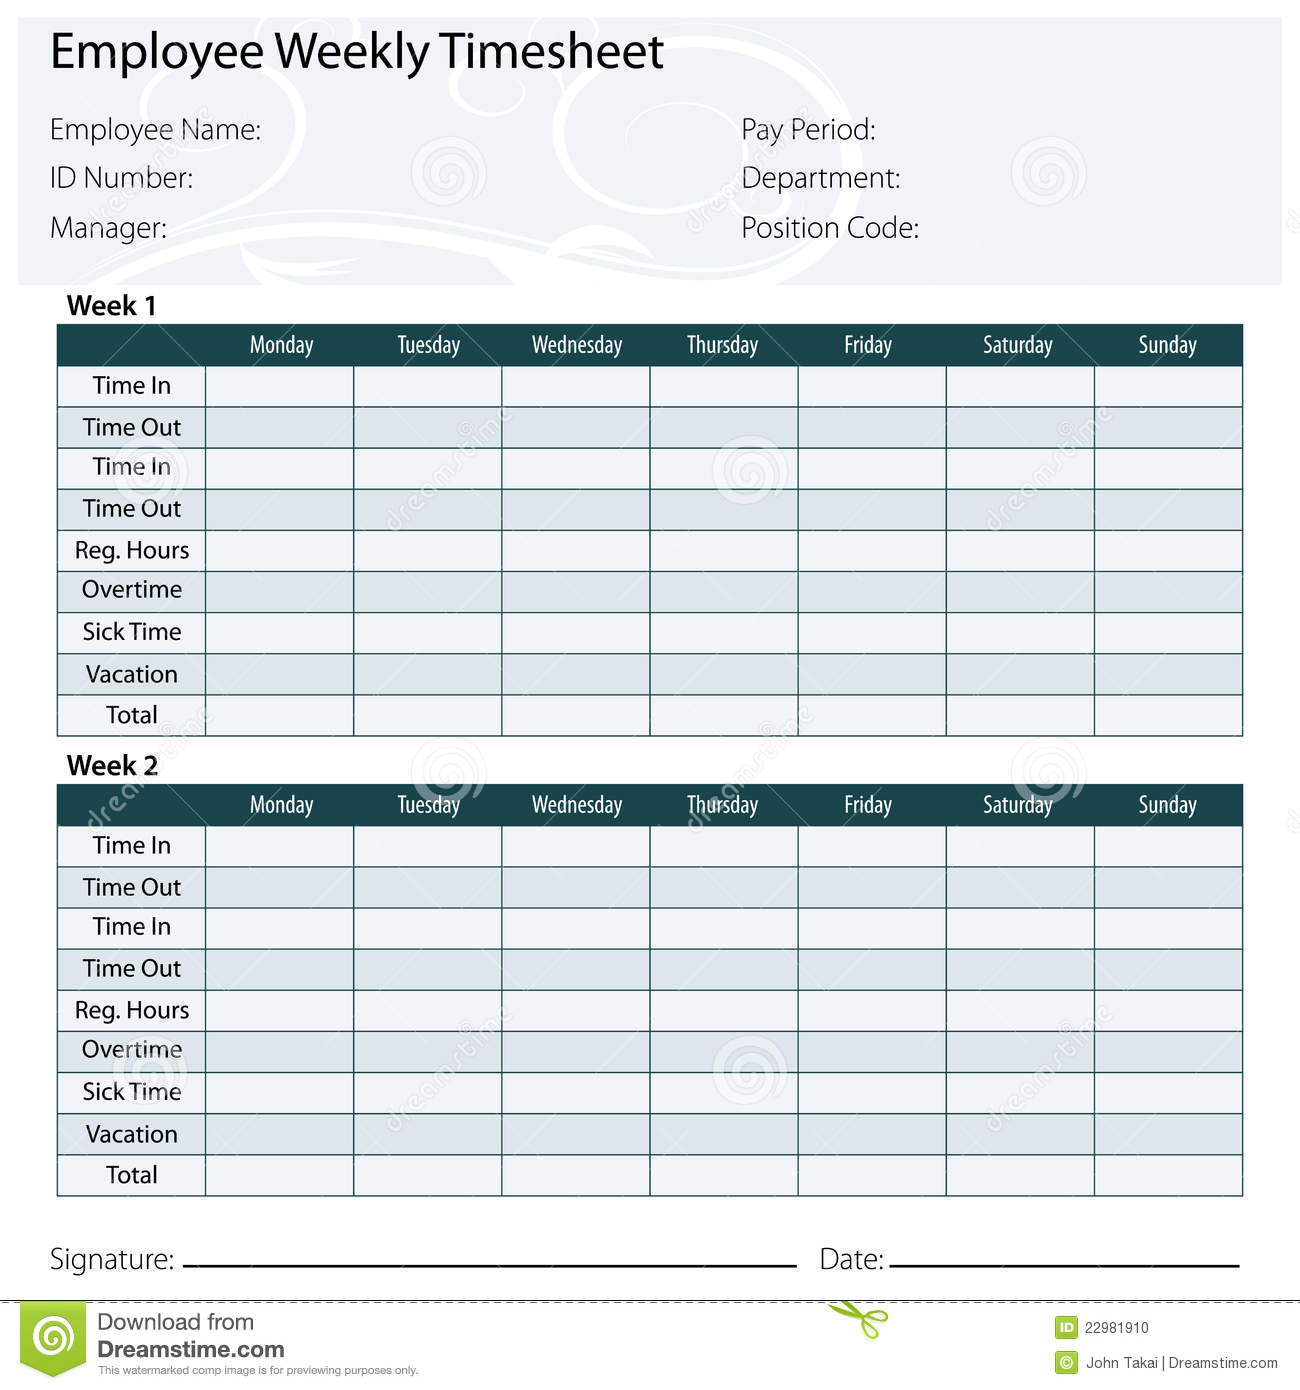 Employee Timesheet Template Stock Photo Image 22981910